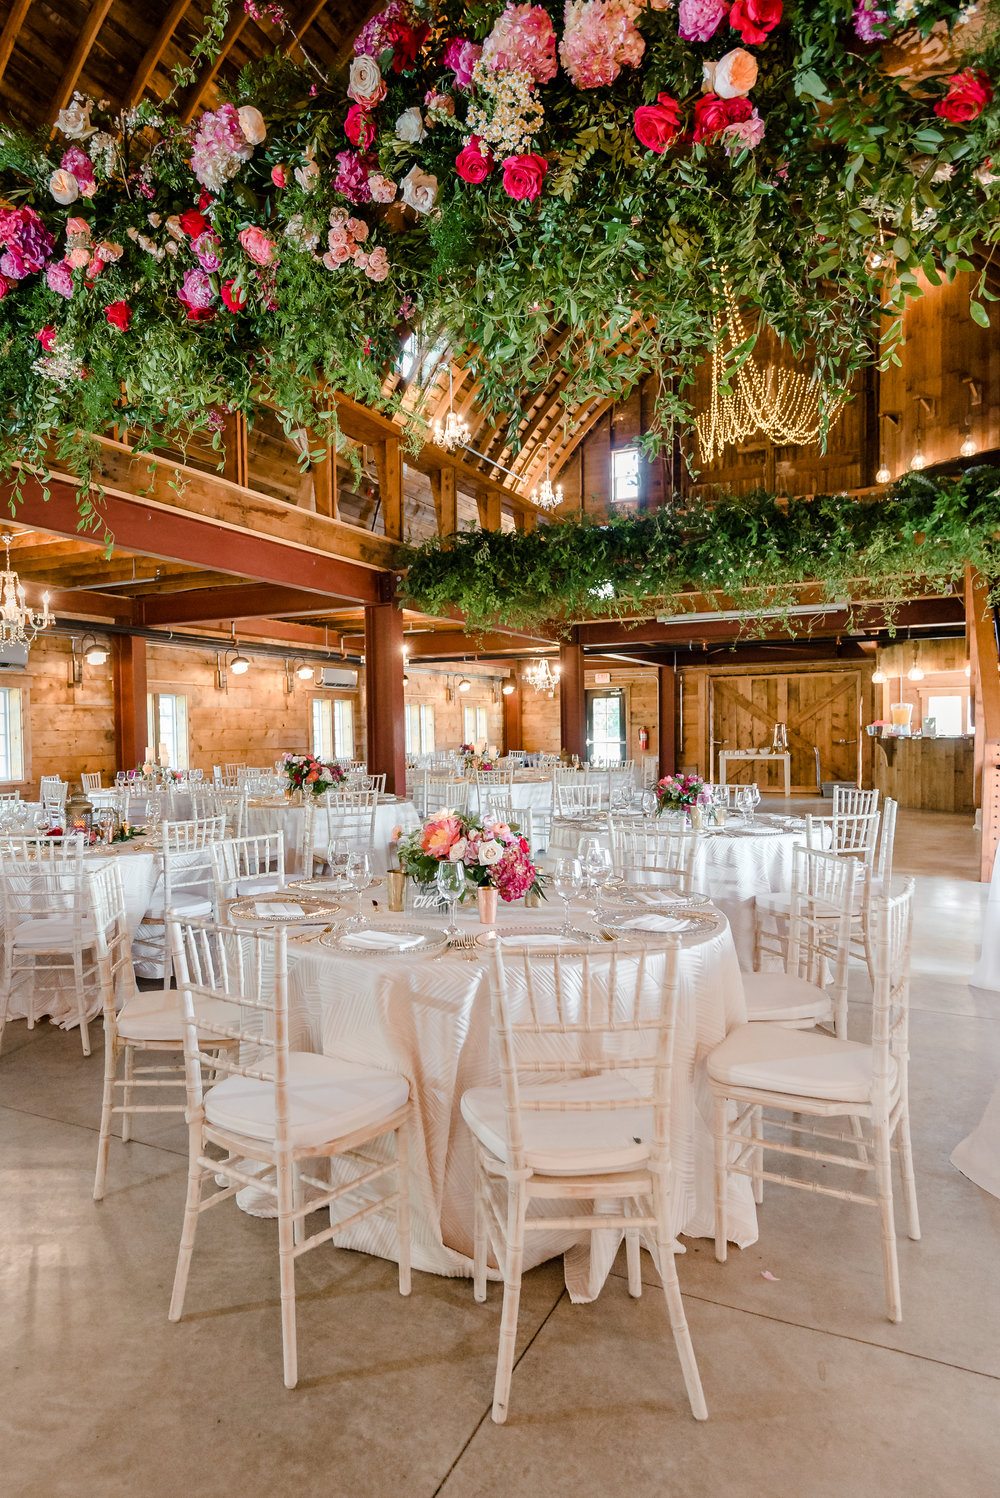 Furber Farm Wedding Reception with Munster Rose and See Jane Plan Wedding Planner - Best MN Wedding Photographer